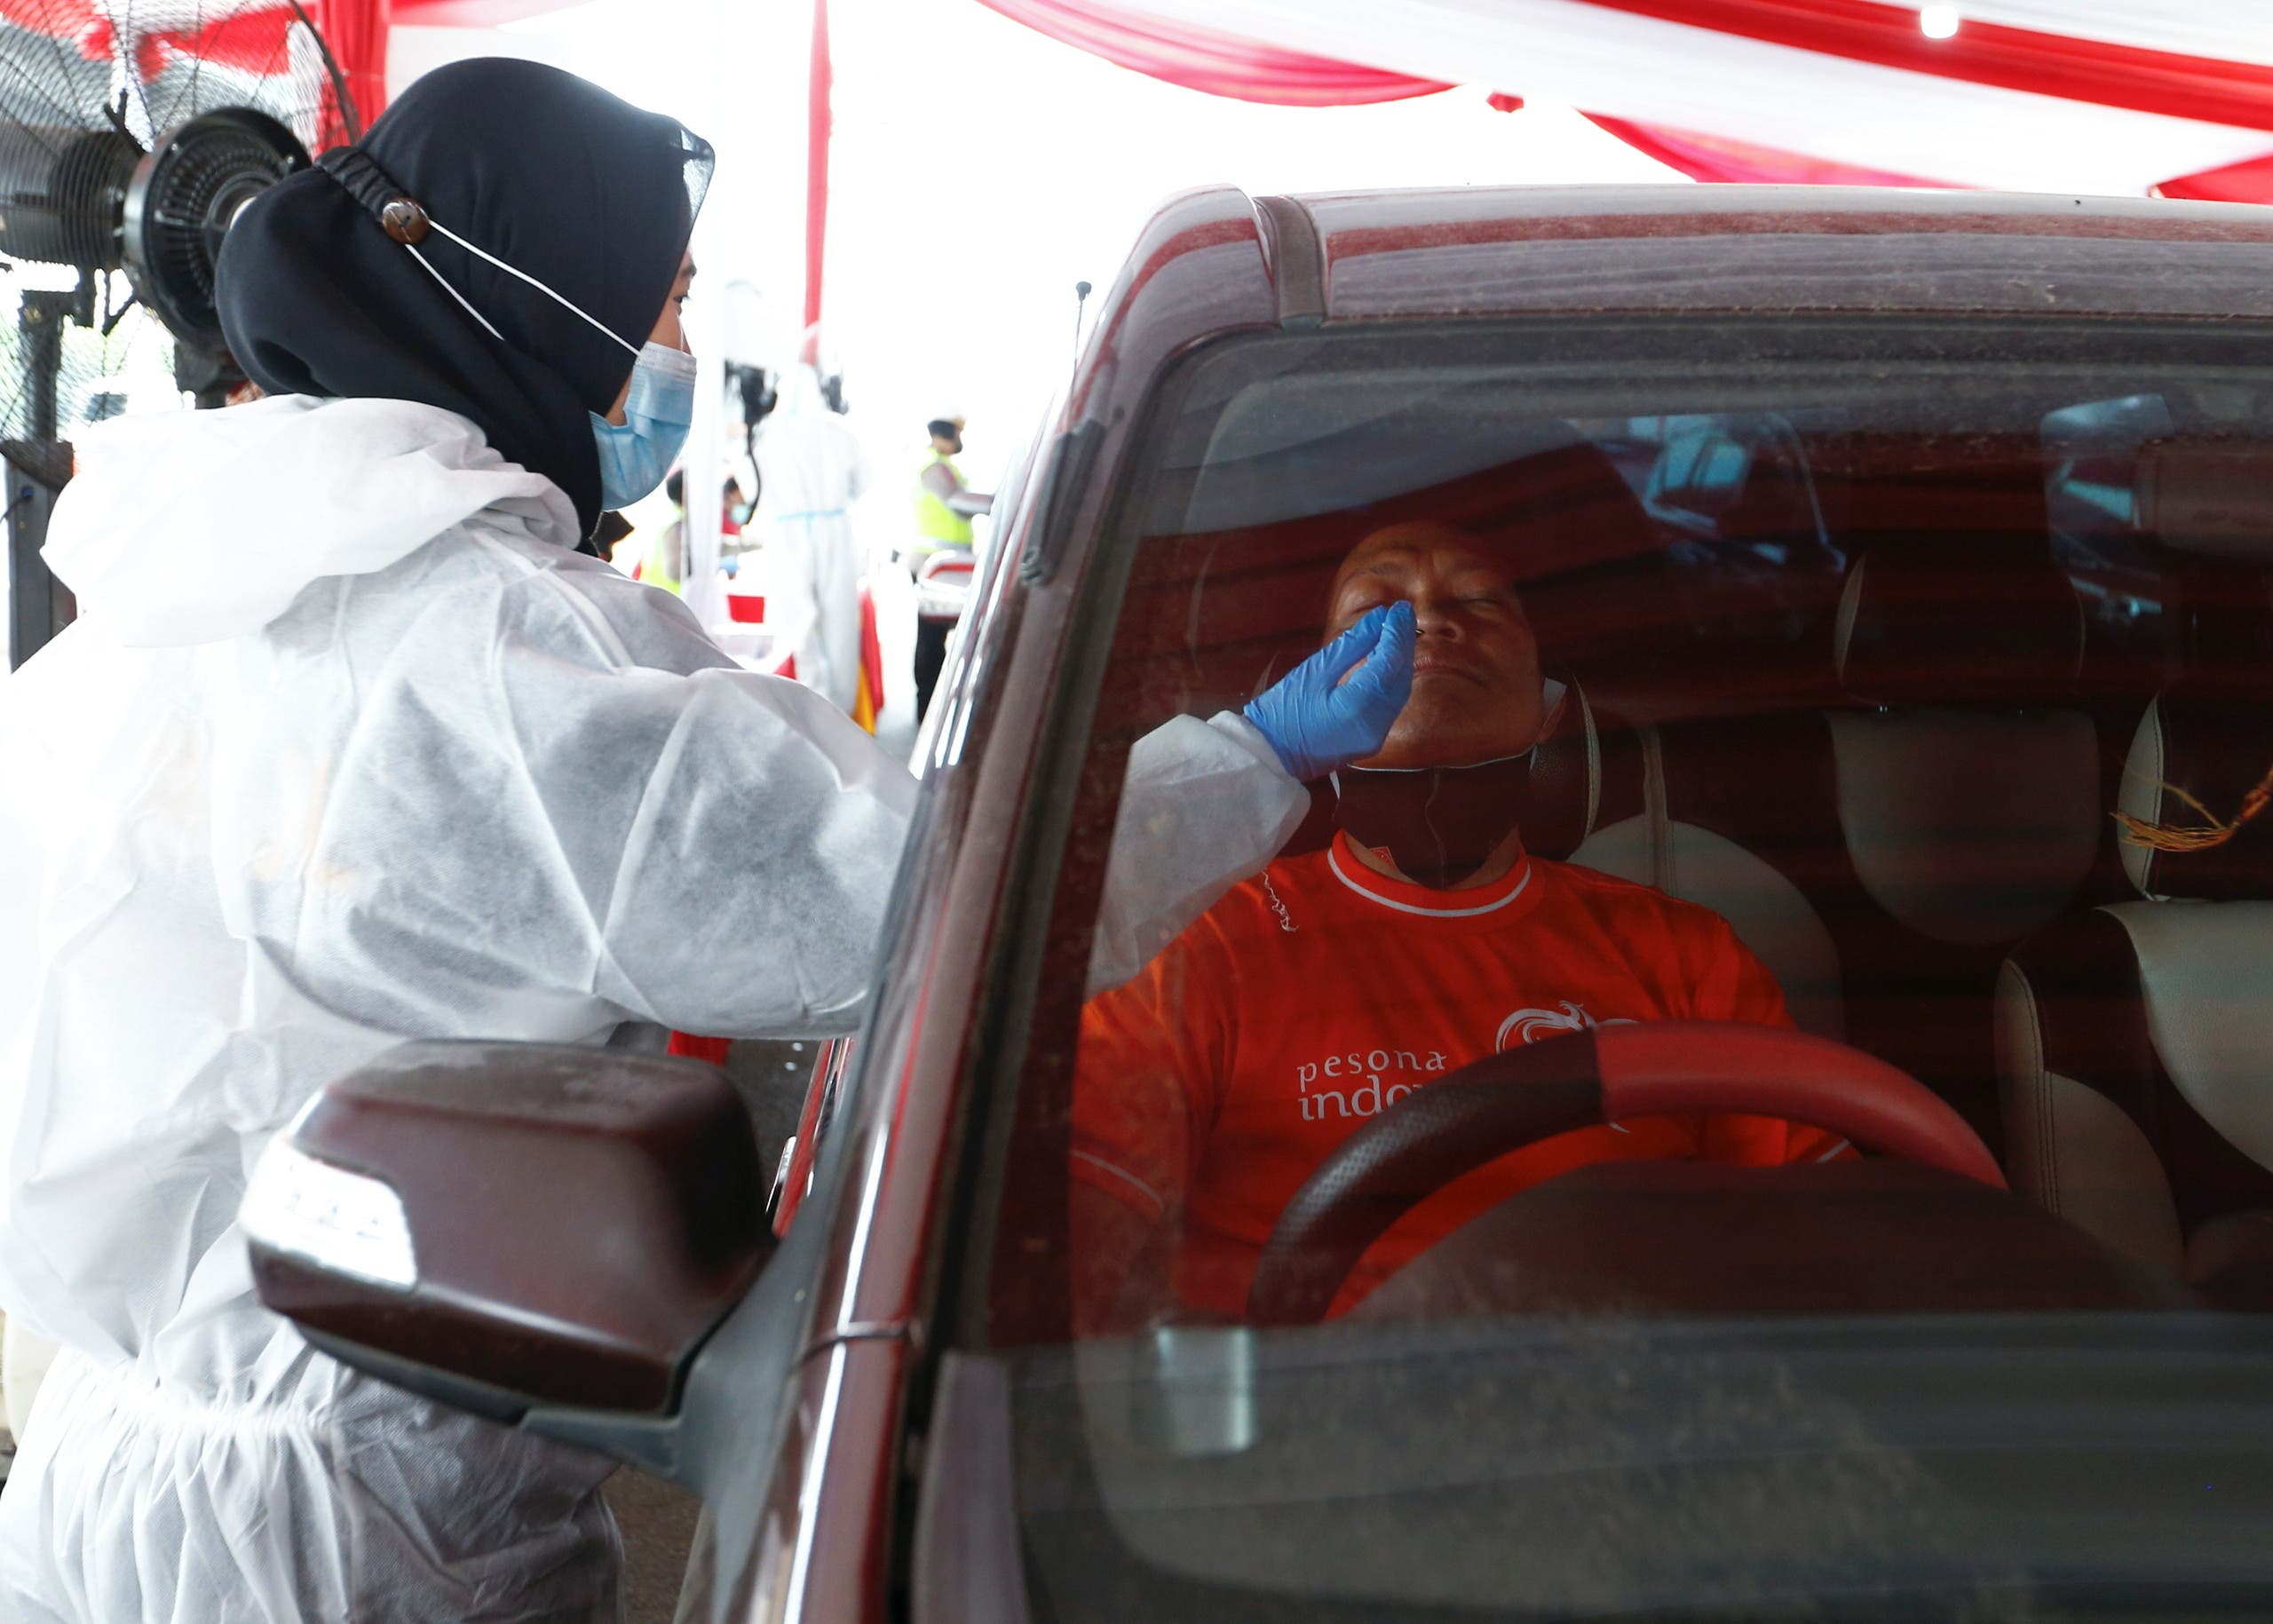 A healthcare worker in personal protective equipment takes a swab sample from a person to be tested for COVID-19 as travellers return to the capital city after the Eid al-Fitr festival, amid the coronavirus disease (COVID-19) pandemic, in Cikarang, Bekasi, on the outskirts of Jakarta, Indonesia, May 17, 2021. (Reuters)